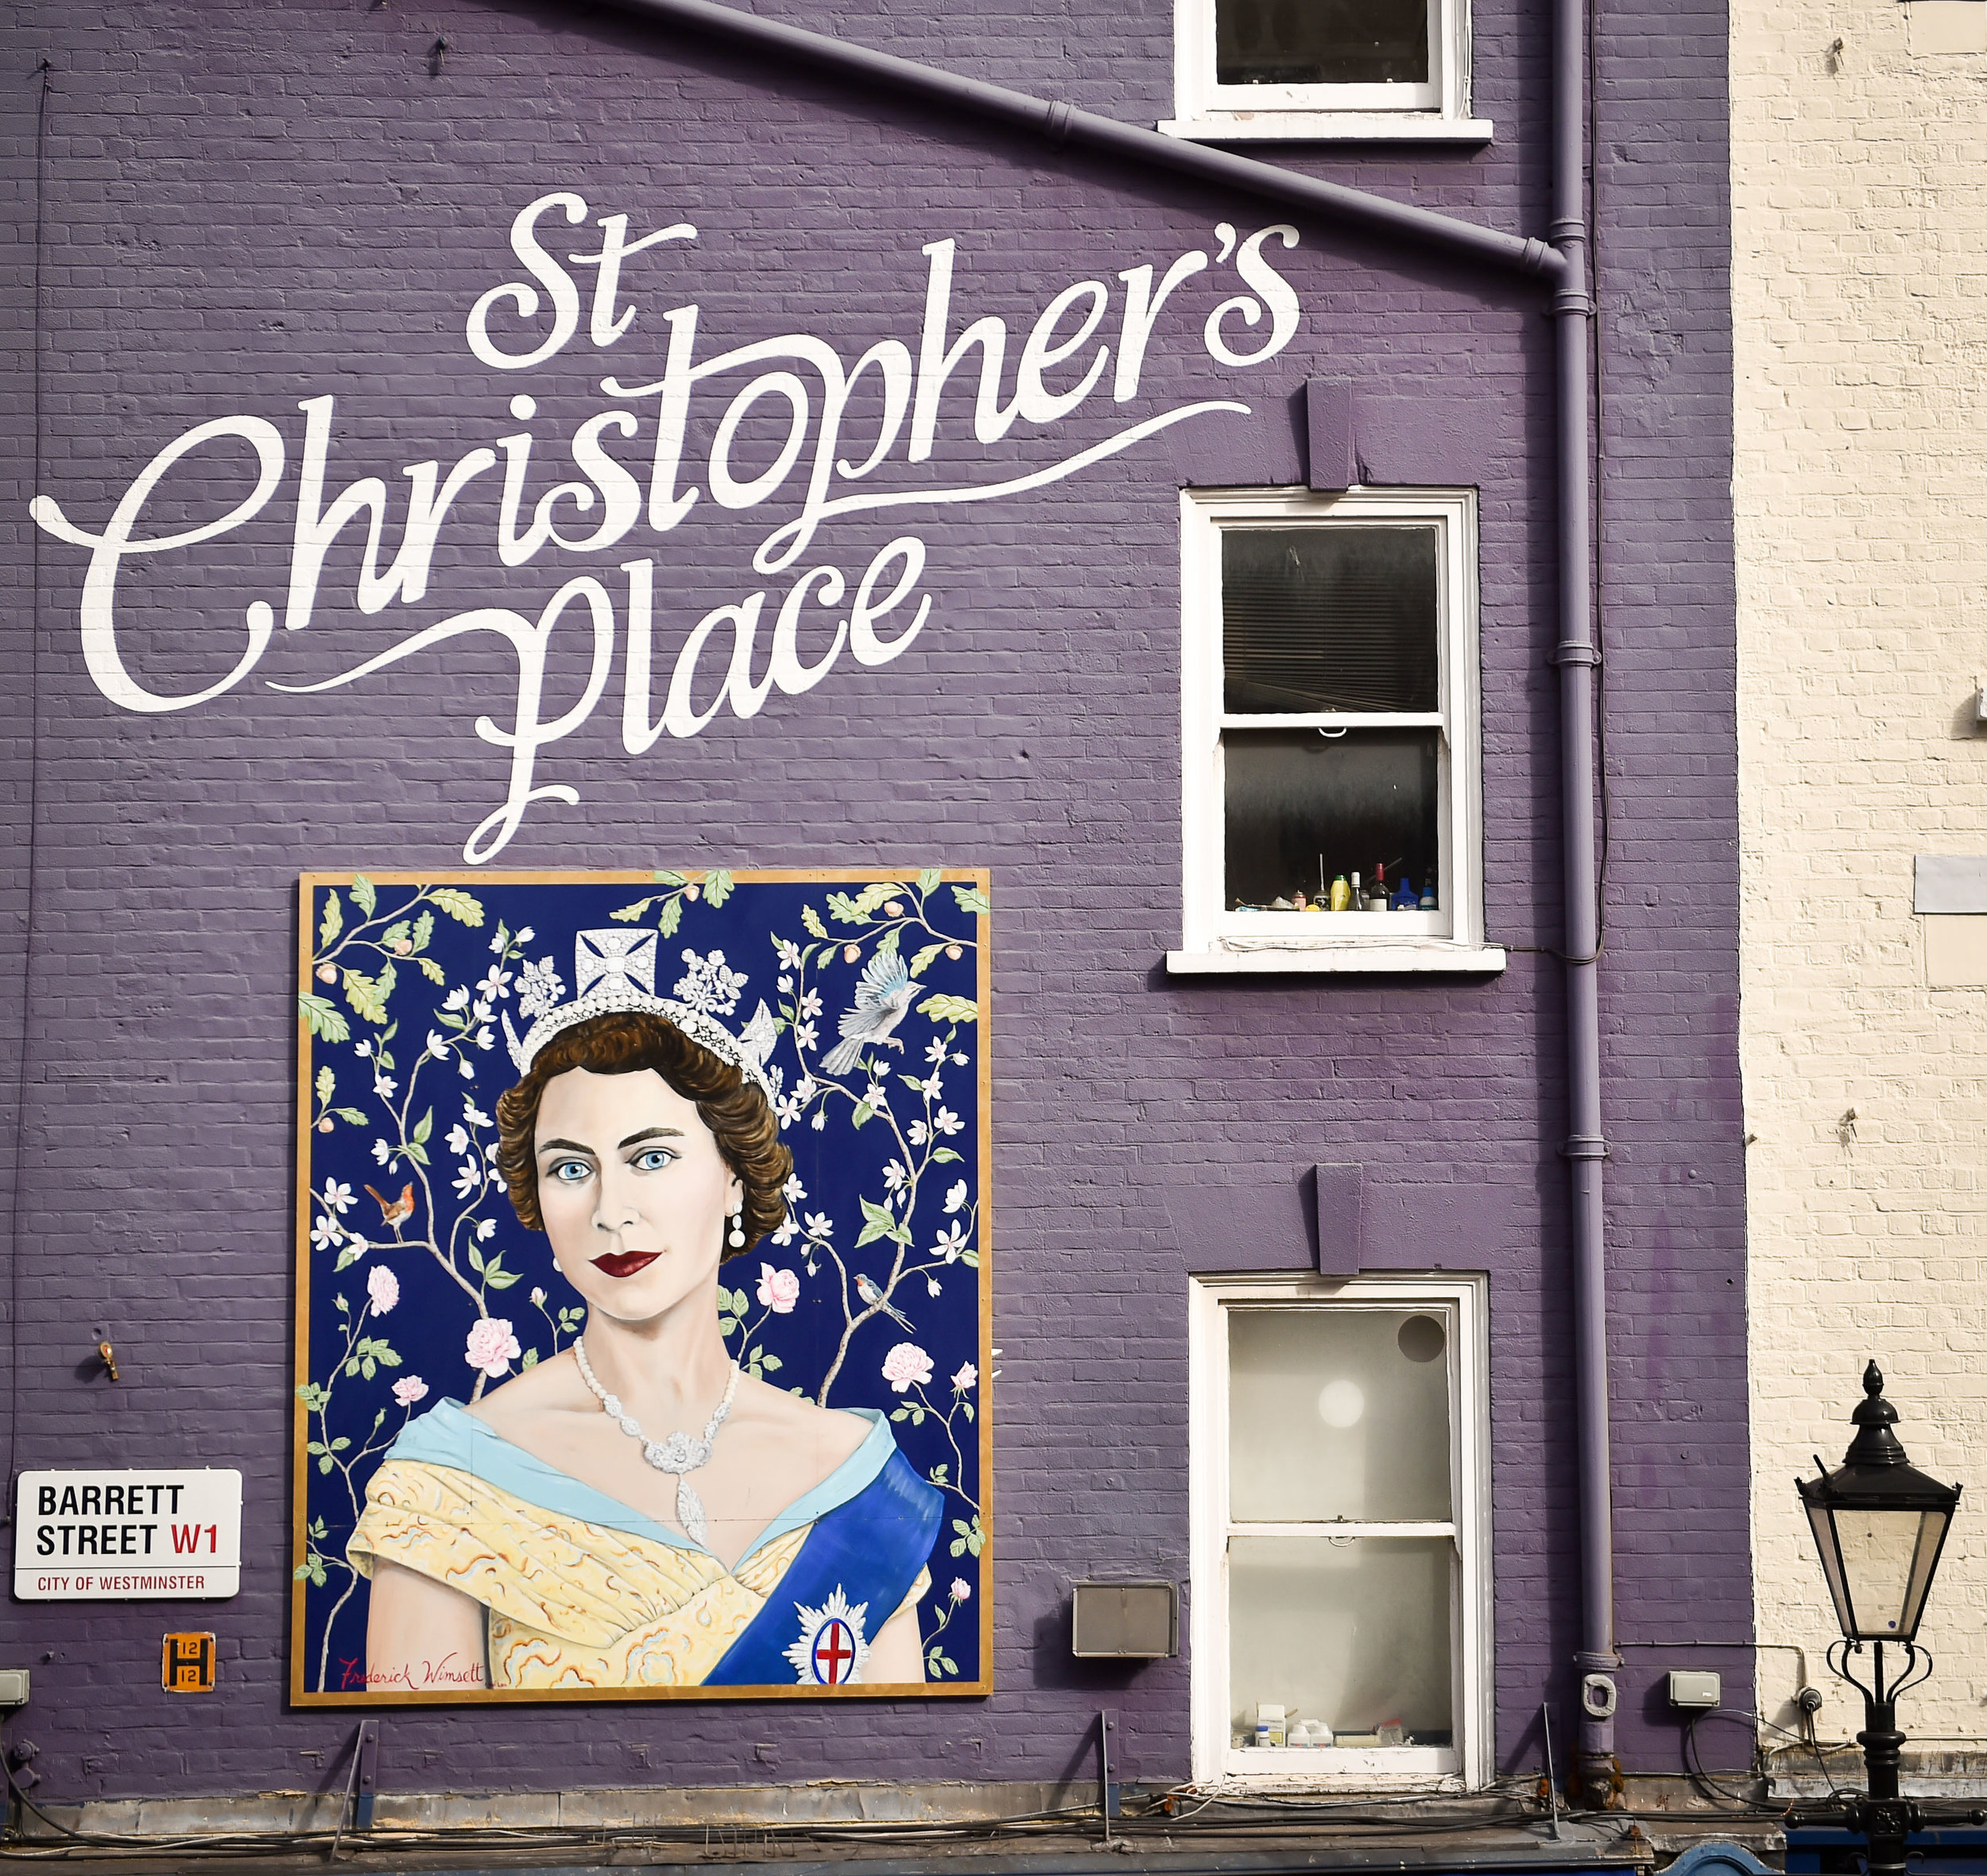 Frederick Wimsett - murals and artistic design - other projects The Queen at St Christophers place 3.jpg